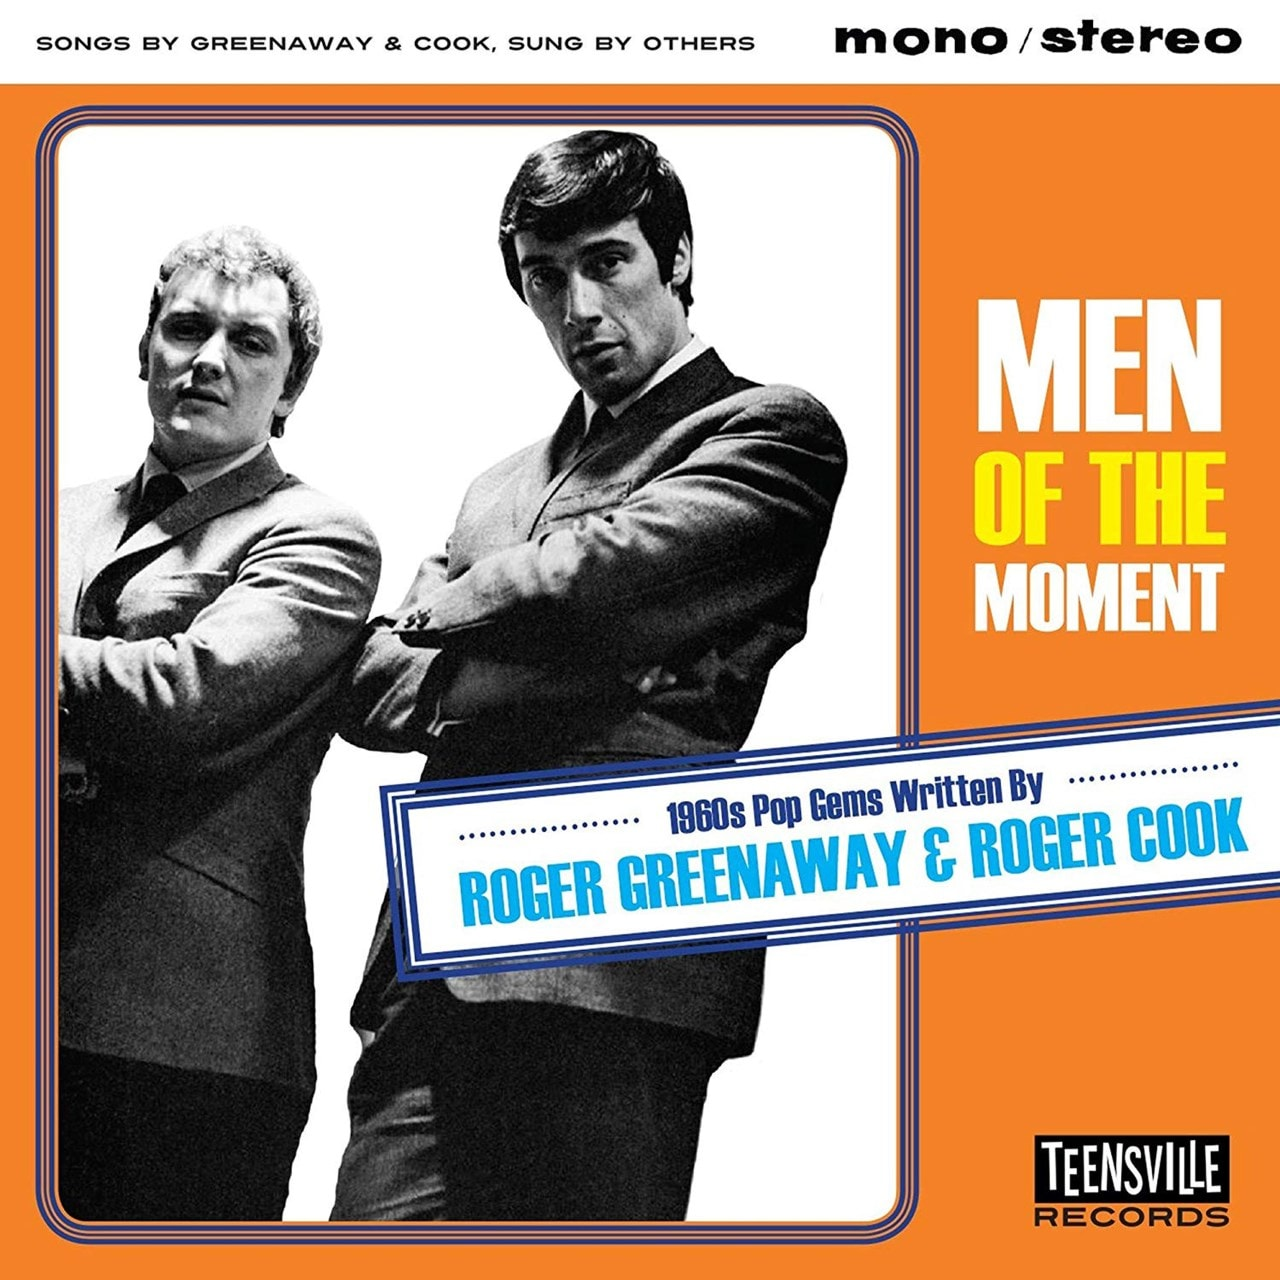 Men of the Moment: 1960s Pop Gems Written By Roger Greenaway & Roger Cook - 1